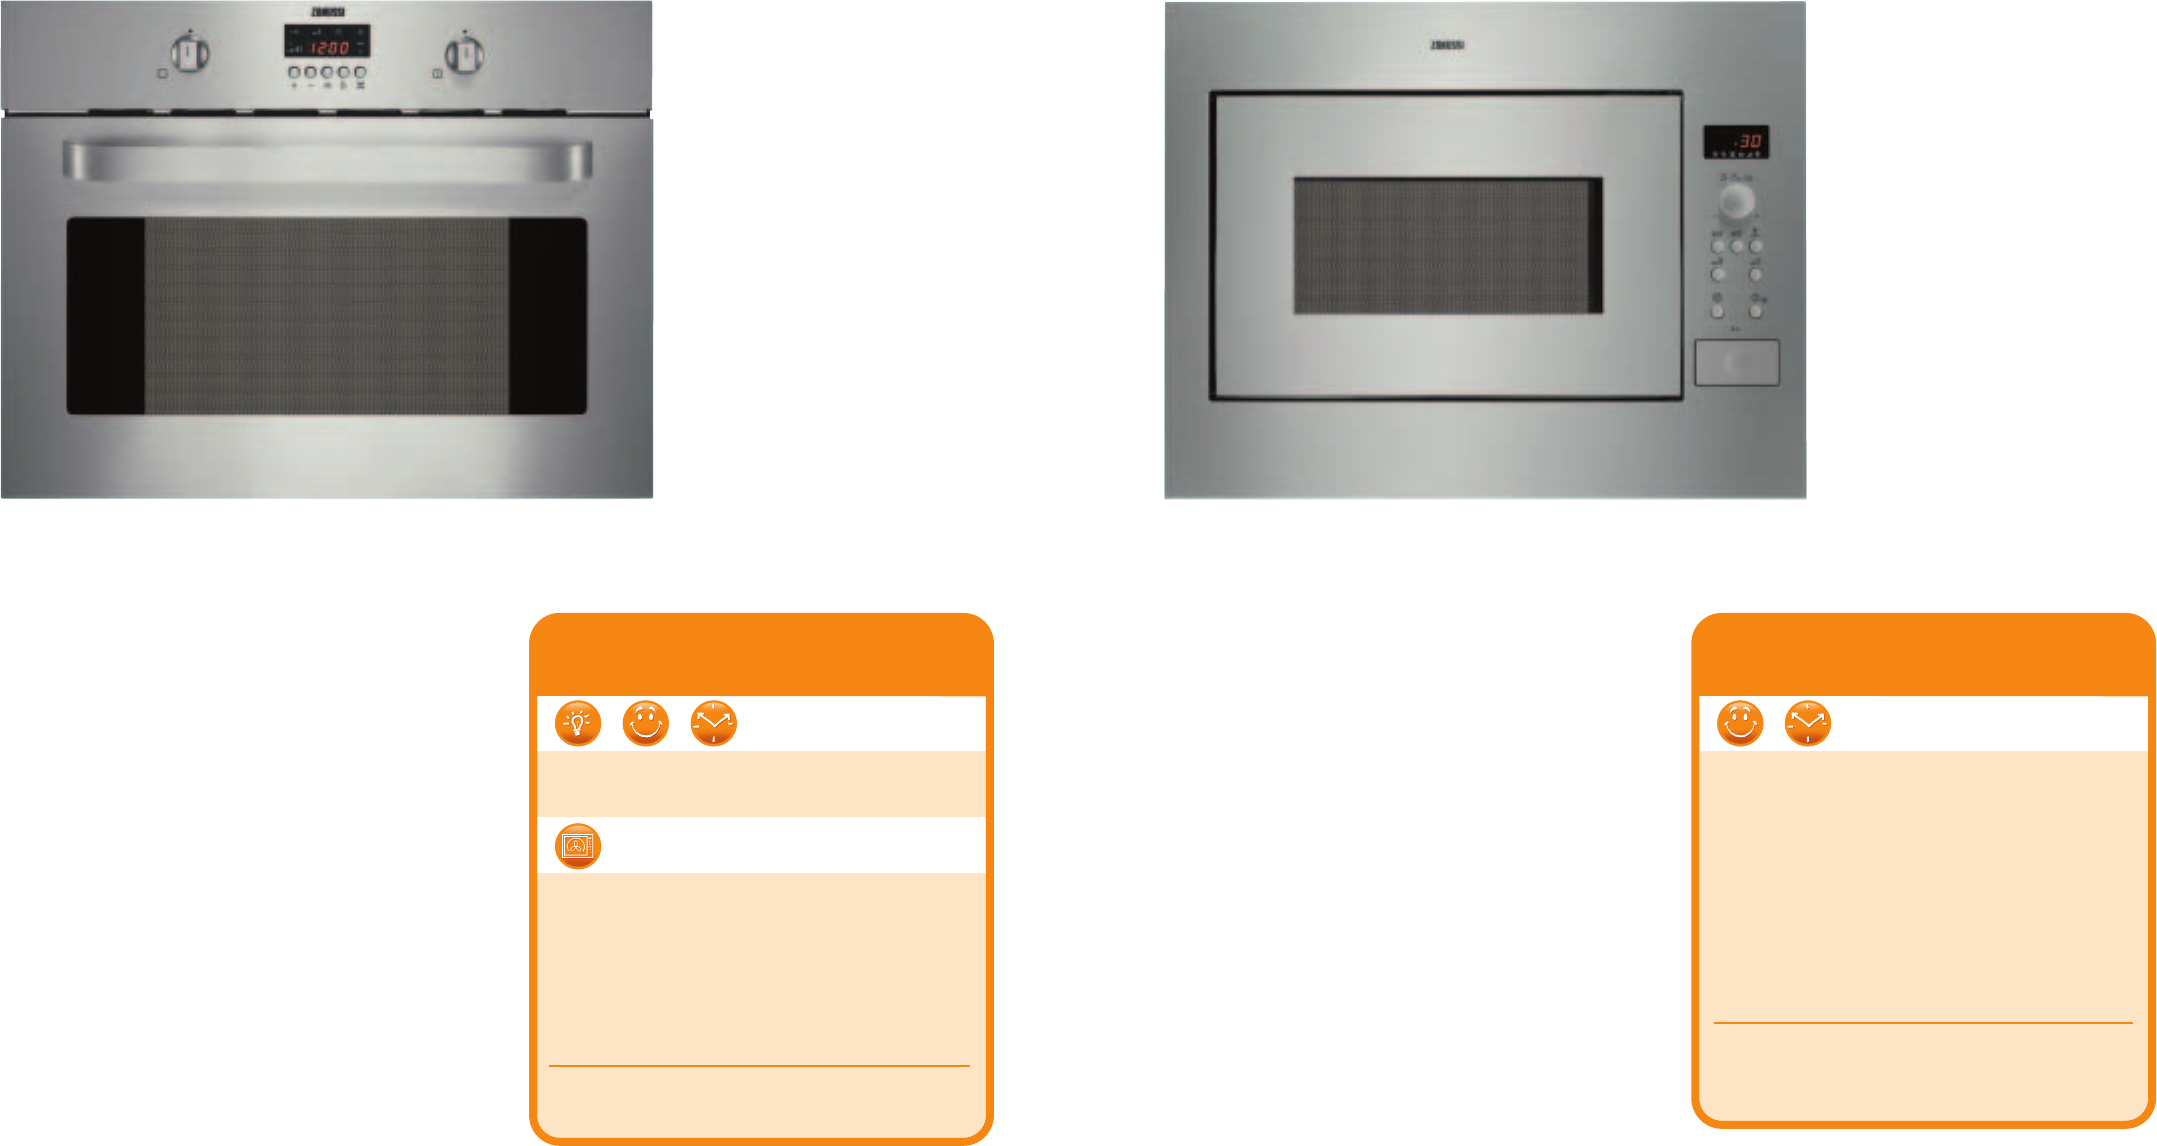 page 3 of zanussi microwave oven znm11 user guide manualsonline com rh kitchen manualsonline com zanussi zod370x double electric oven manual Zanussi Oven Malaysia